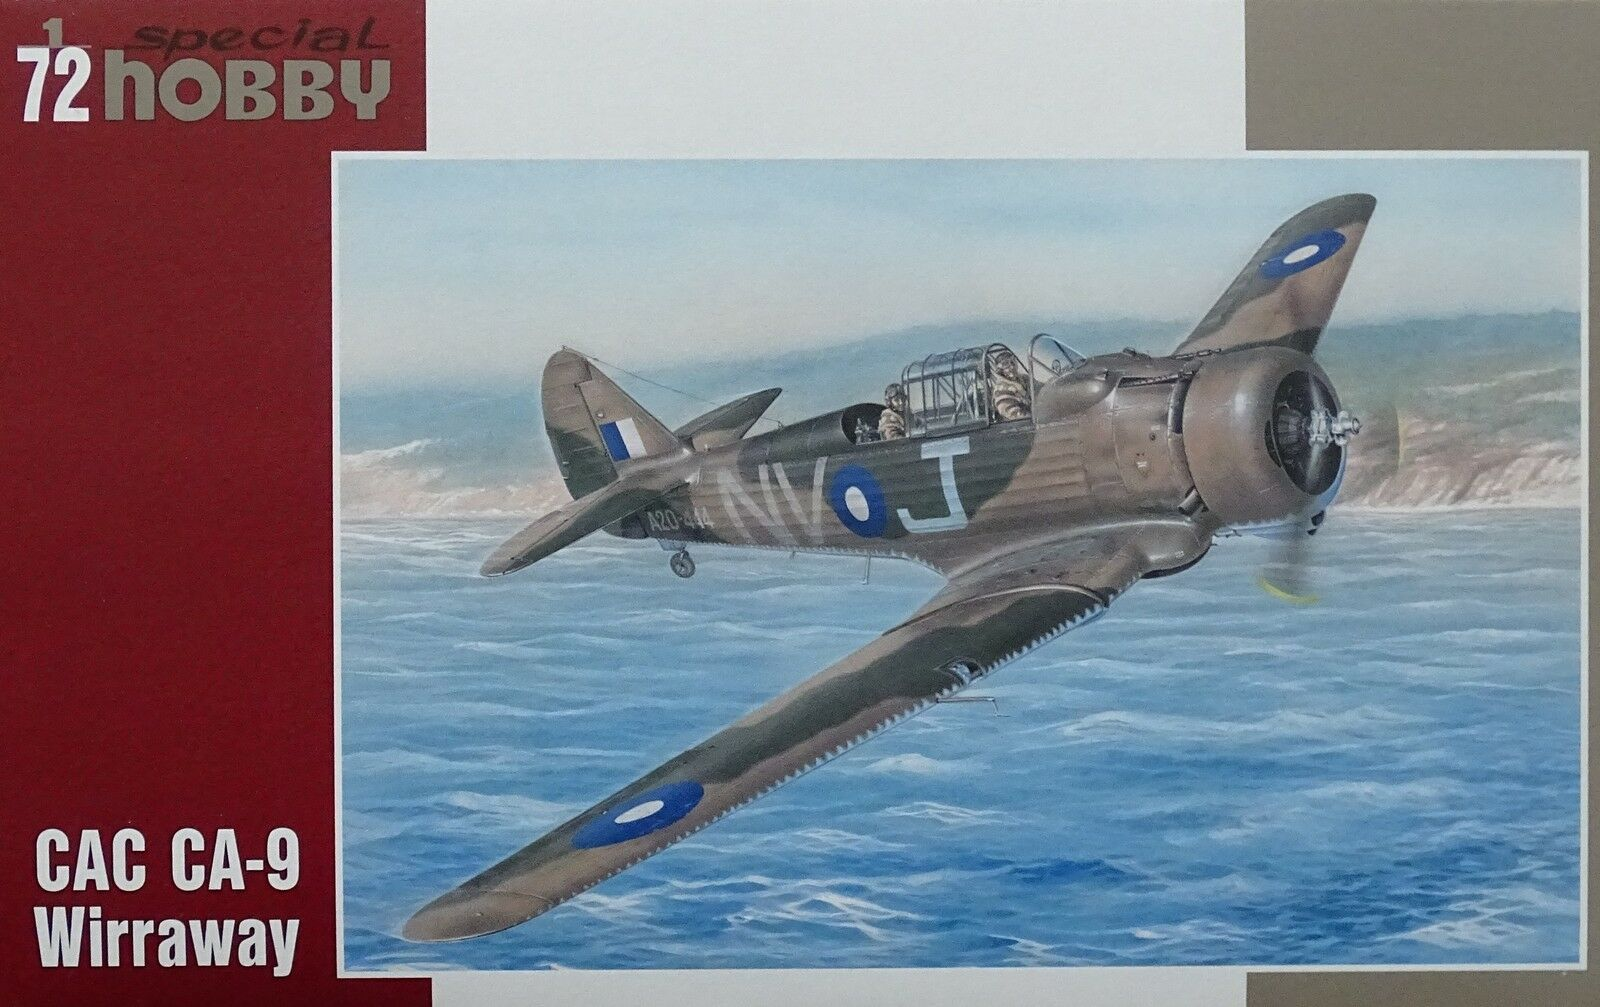 Special Hobby 1/72 CAC CA-9 Wirraway